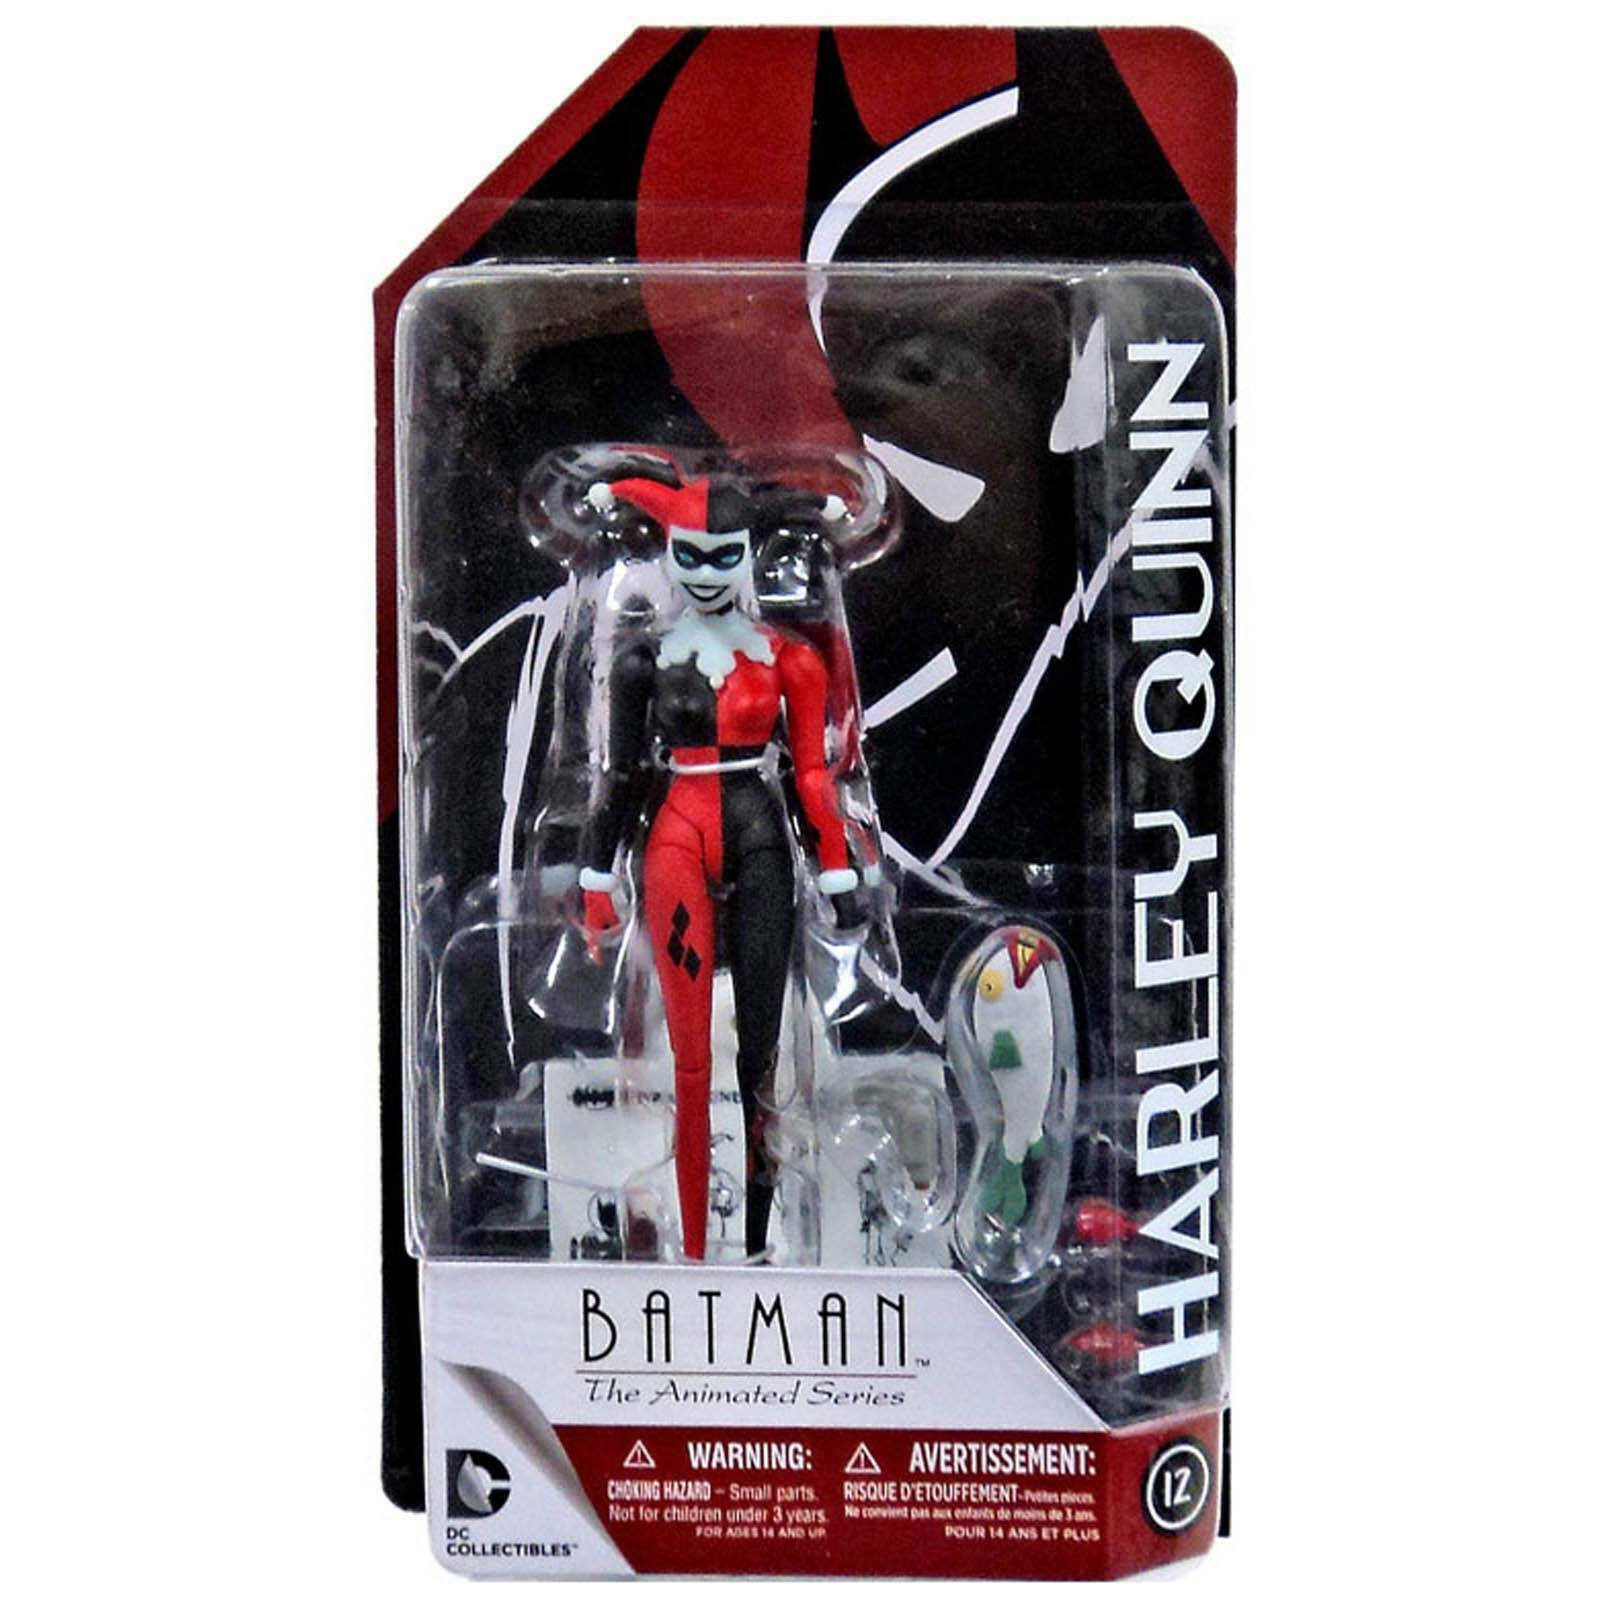 Batman The Animated Series New Adventures Action Action Action Figure Batwing - DC Comics 5c020d